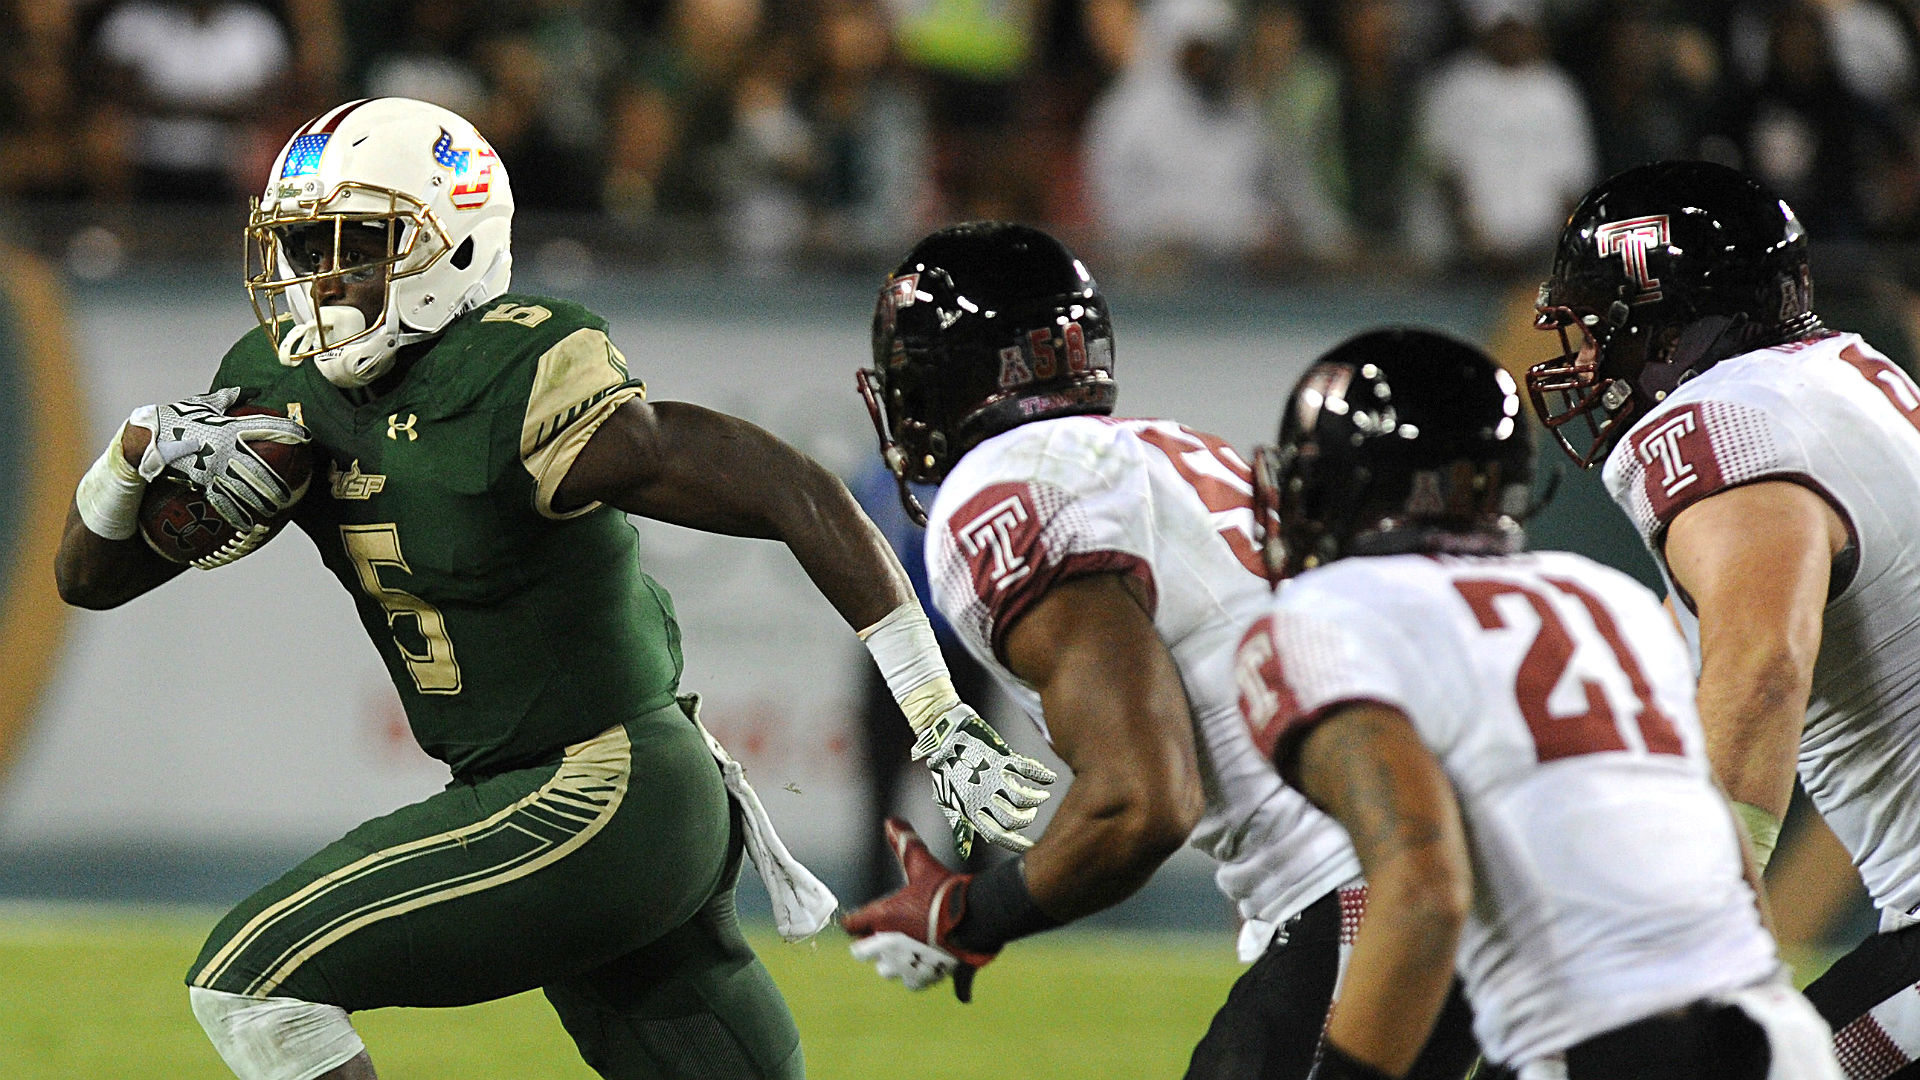 Friday college football betting lines and picks – Four bowl-bound teams in action